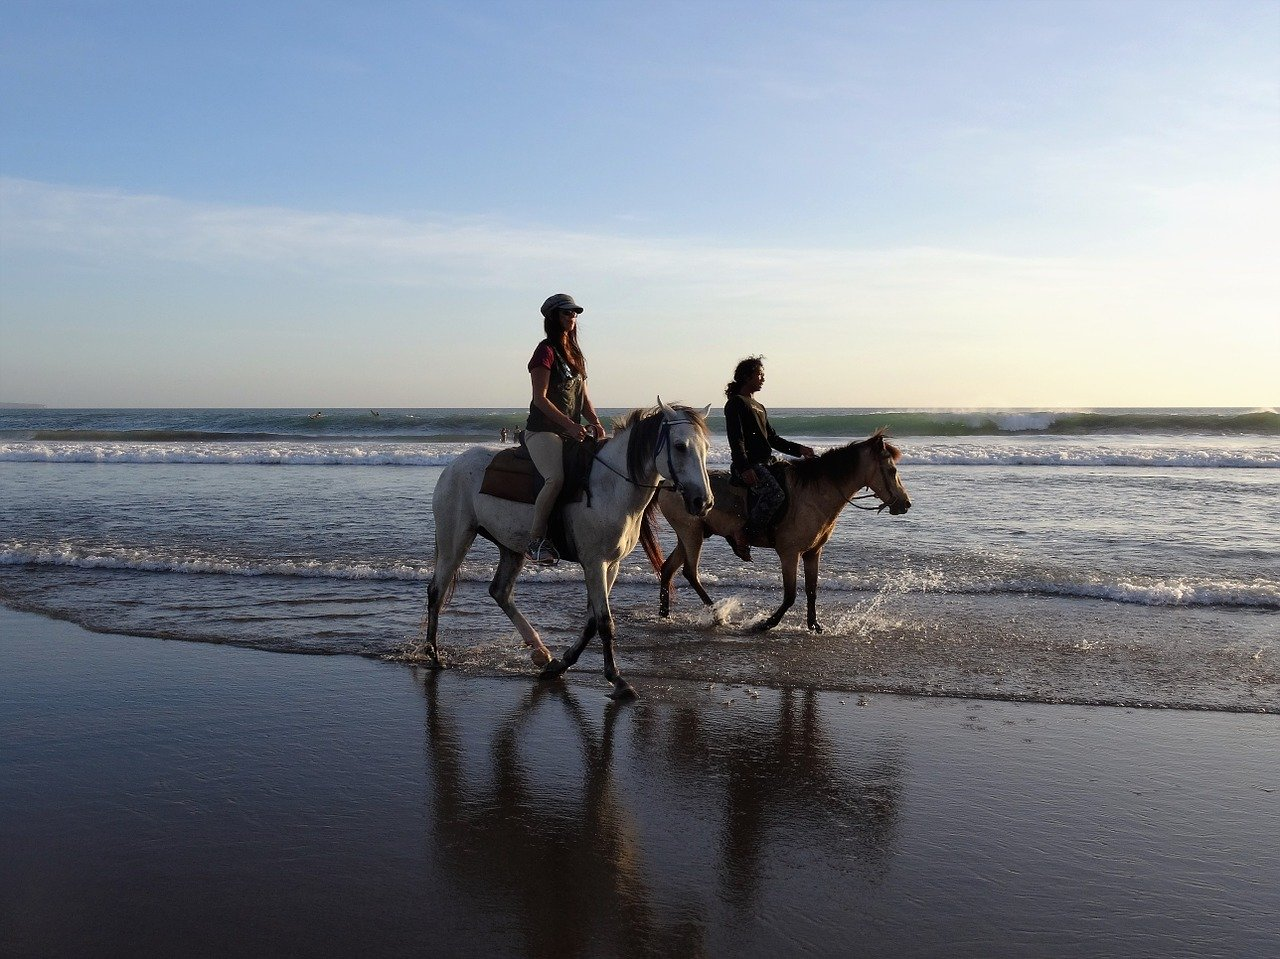 walk on the beach, horses, bali